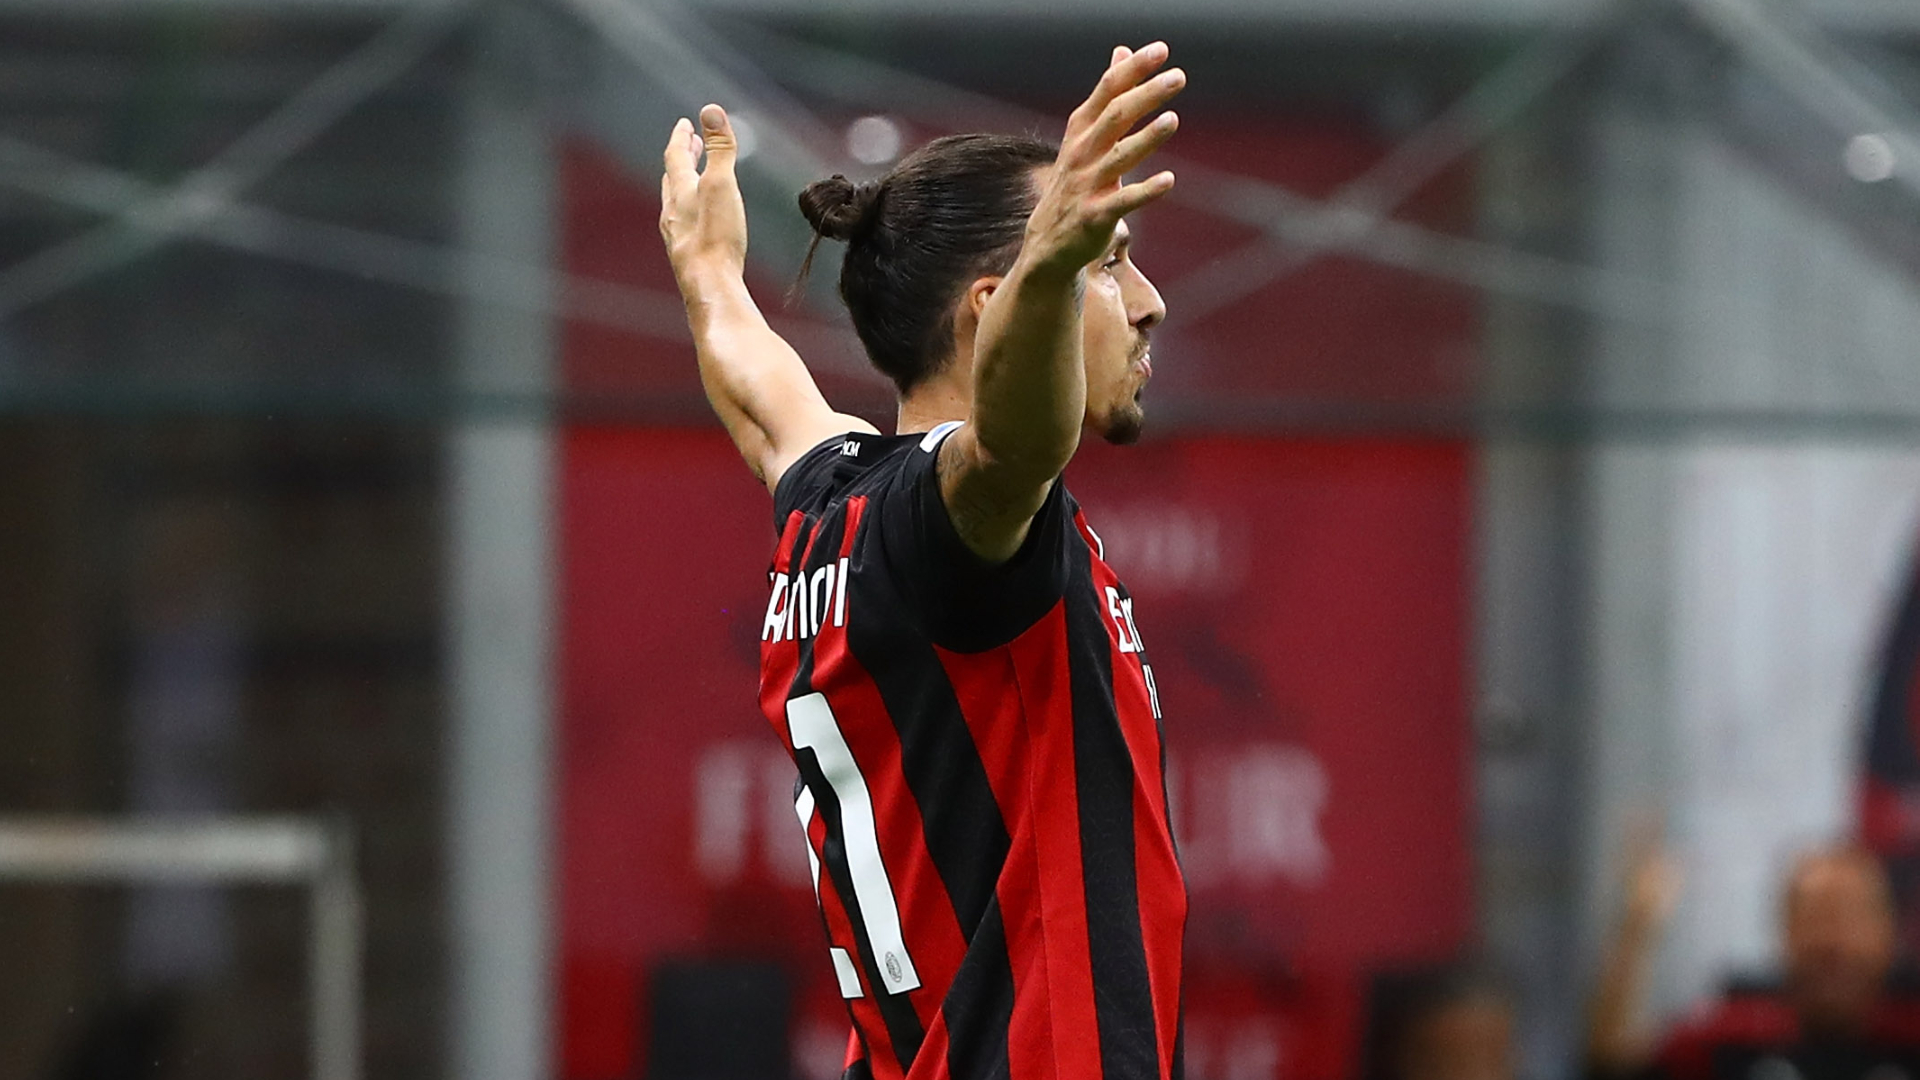 'Ibrahimovic is our priority' - AC Milan hoping to reach agreement with striker, says Maldini